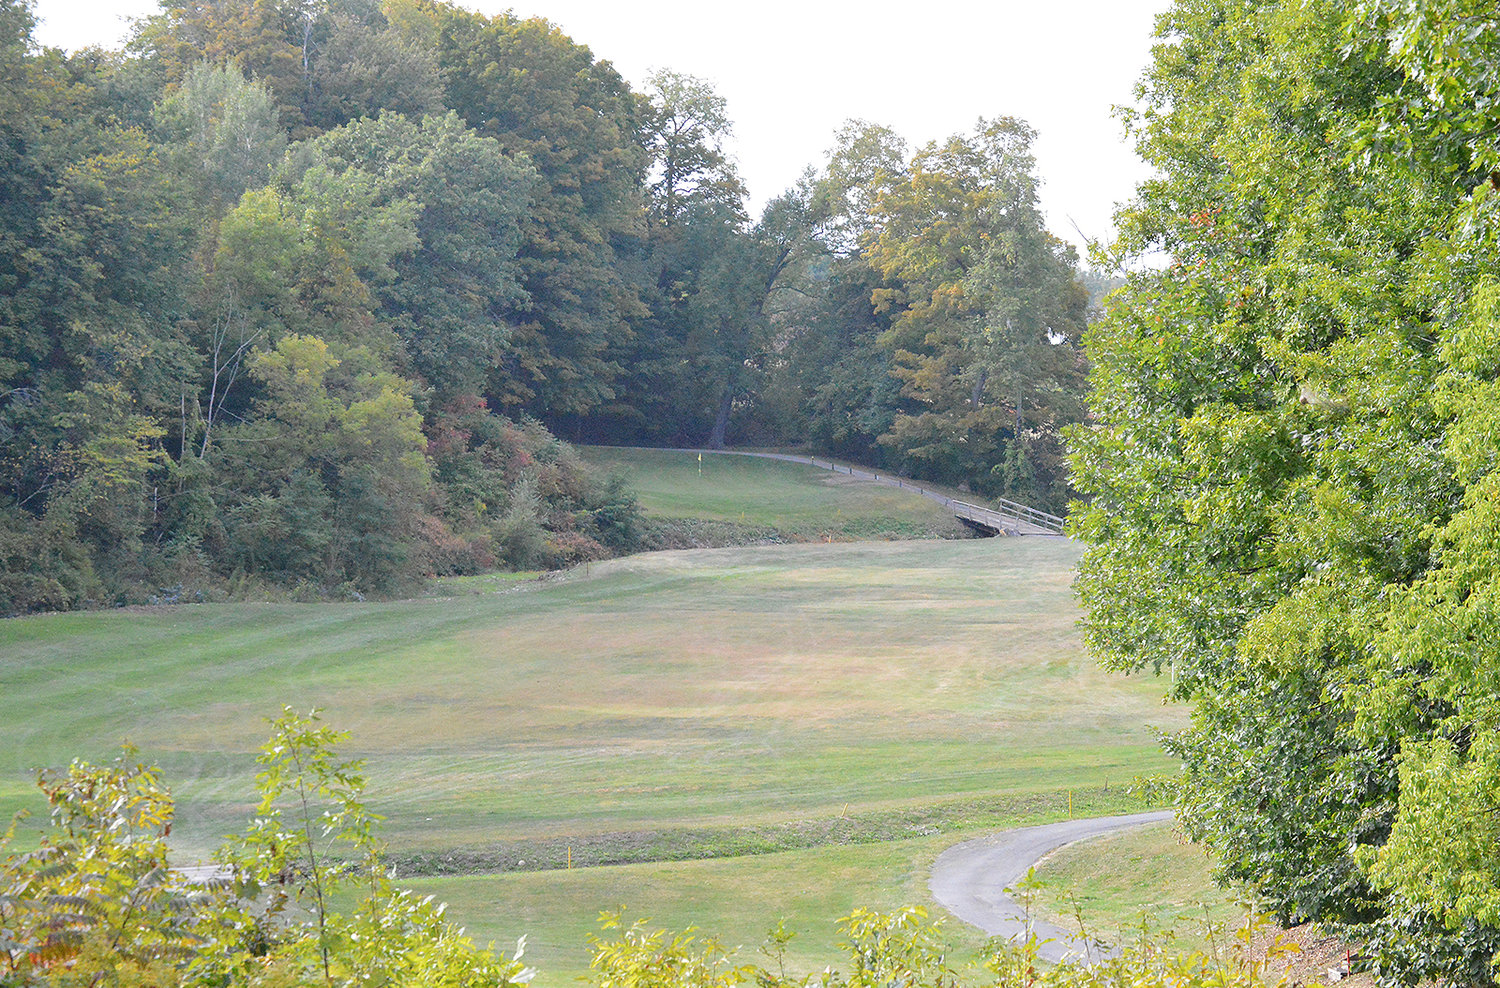 SIGNATURE HOLE — A  shot looking down the fourth fairway at MV Golf and Event Center. The fourth hole is regarded as a signature hole because of the tee shot the player needs to hit in order to leave themselves with a good second shot to get on the green.